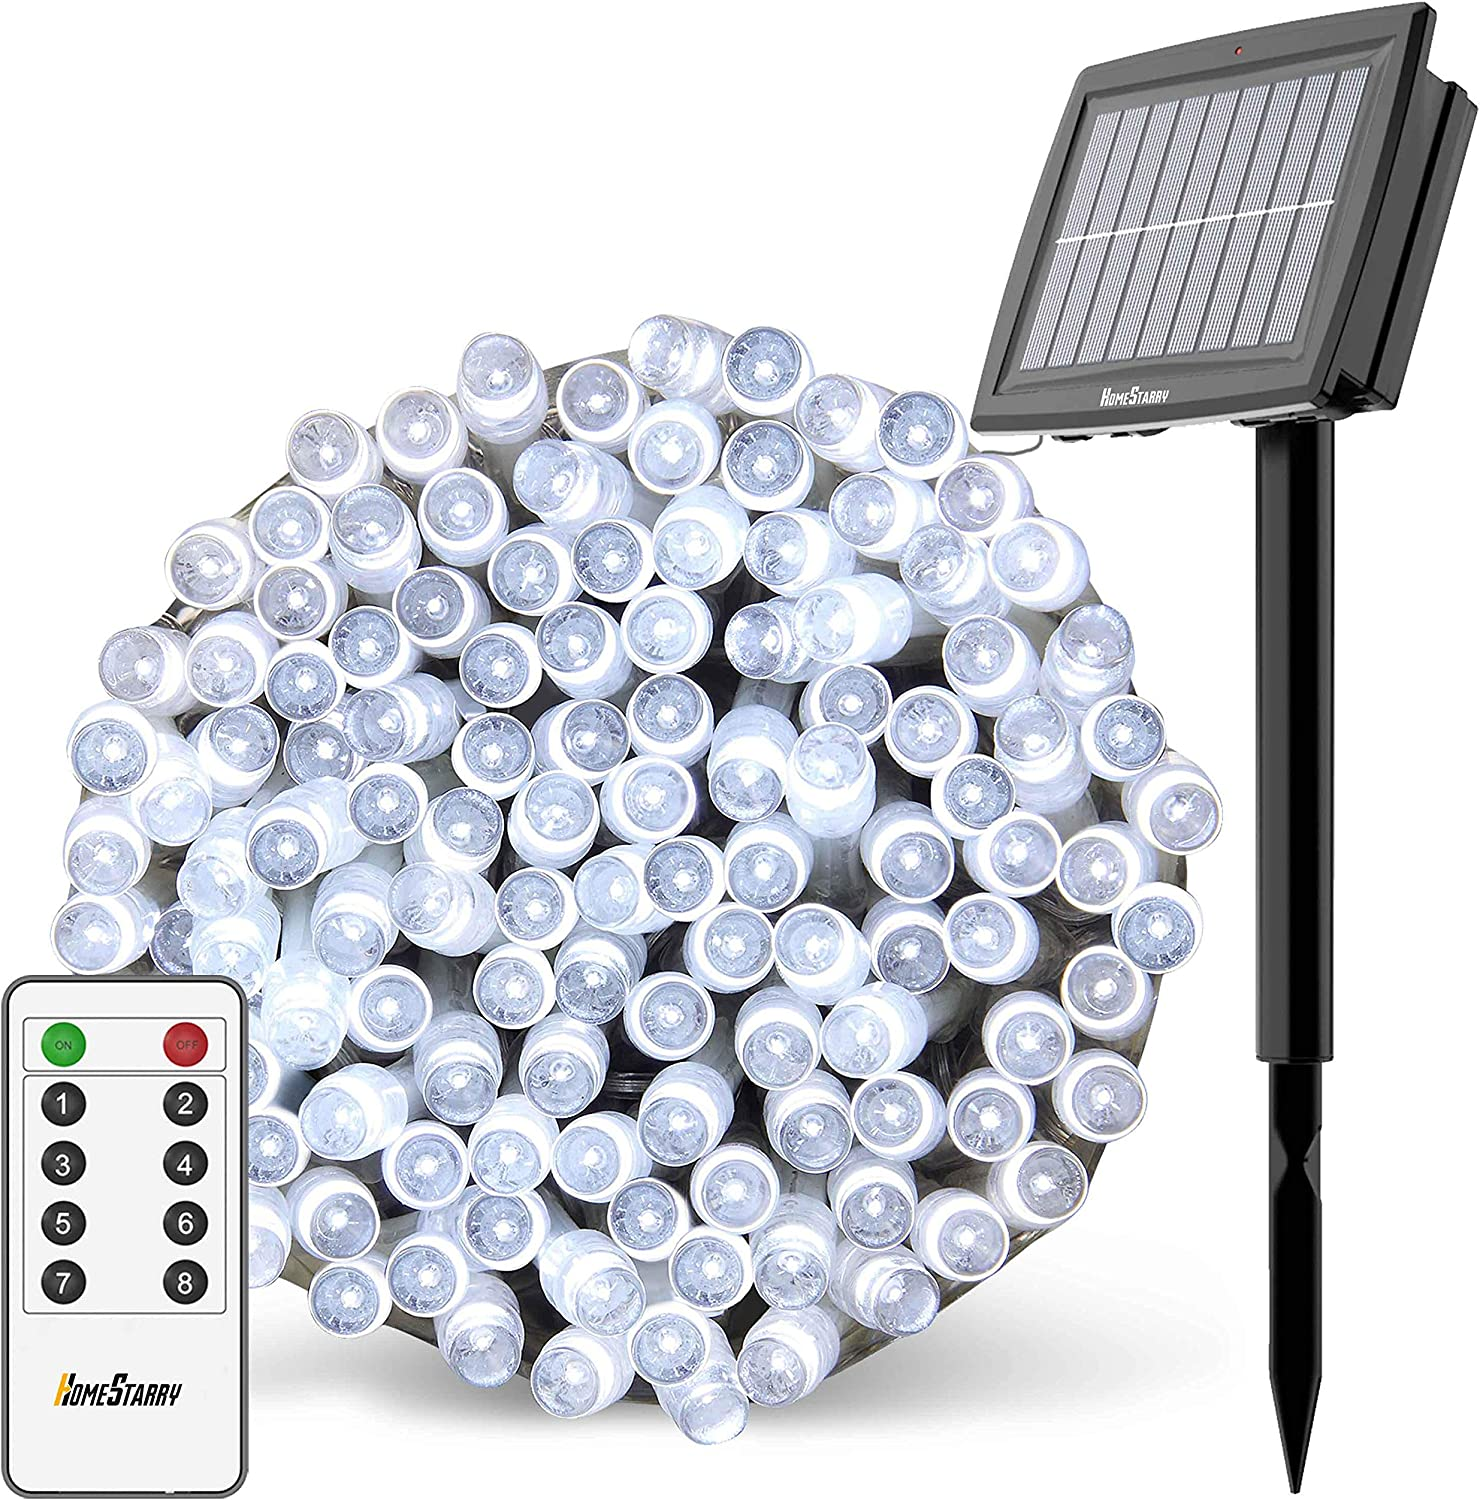 Solar String Lights Outdoor, Christmas Lights, 80Ft 200 LEDs with Remote 8 Lighting Modes Fairy Lights Waterproof Transparent Flexible Cord Perfect for Christmas Party Decor Garden Yard Lawn White